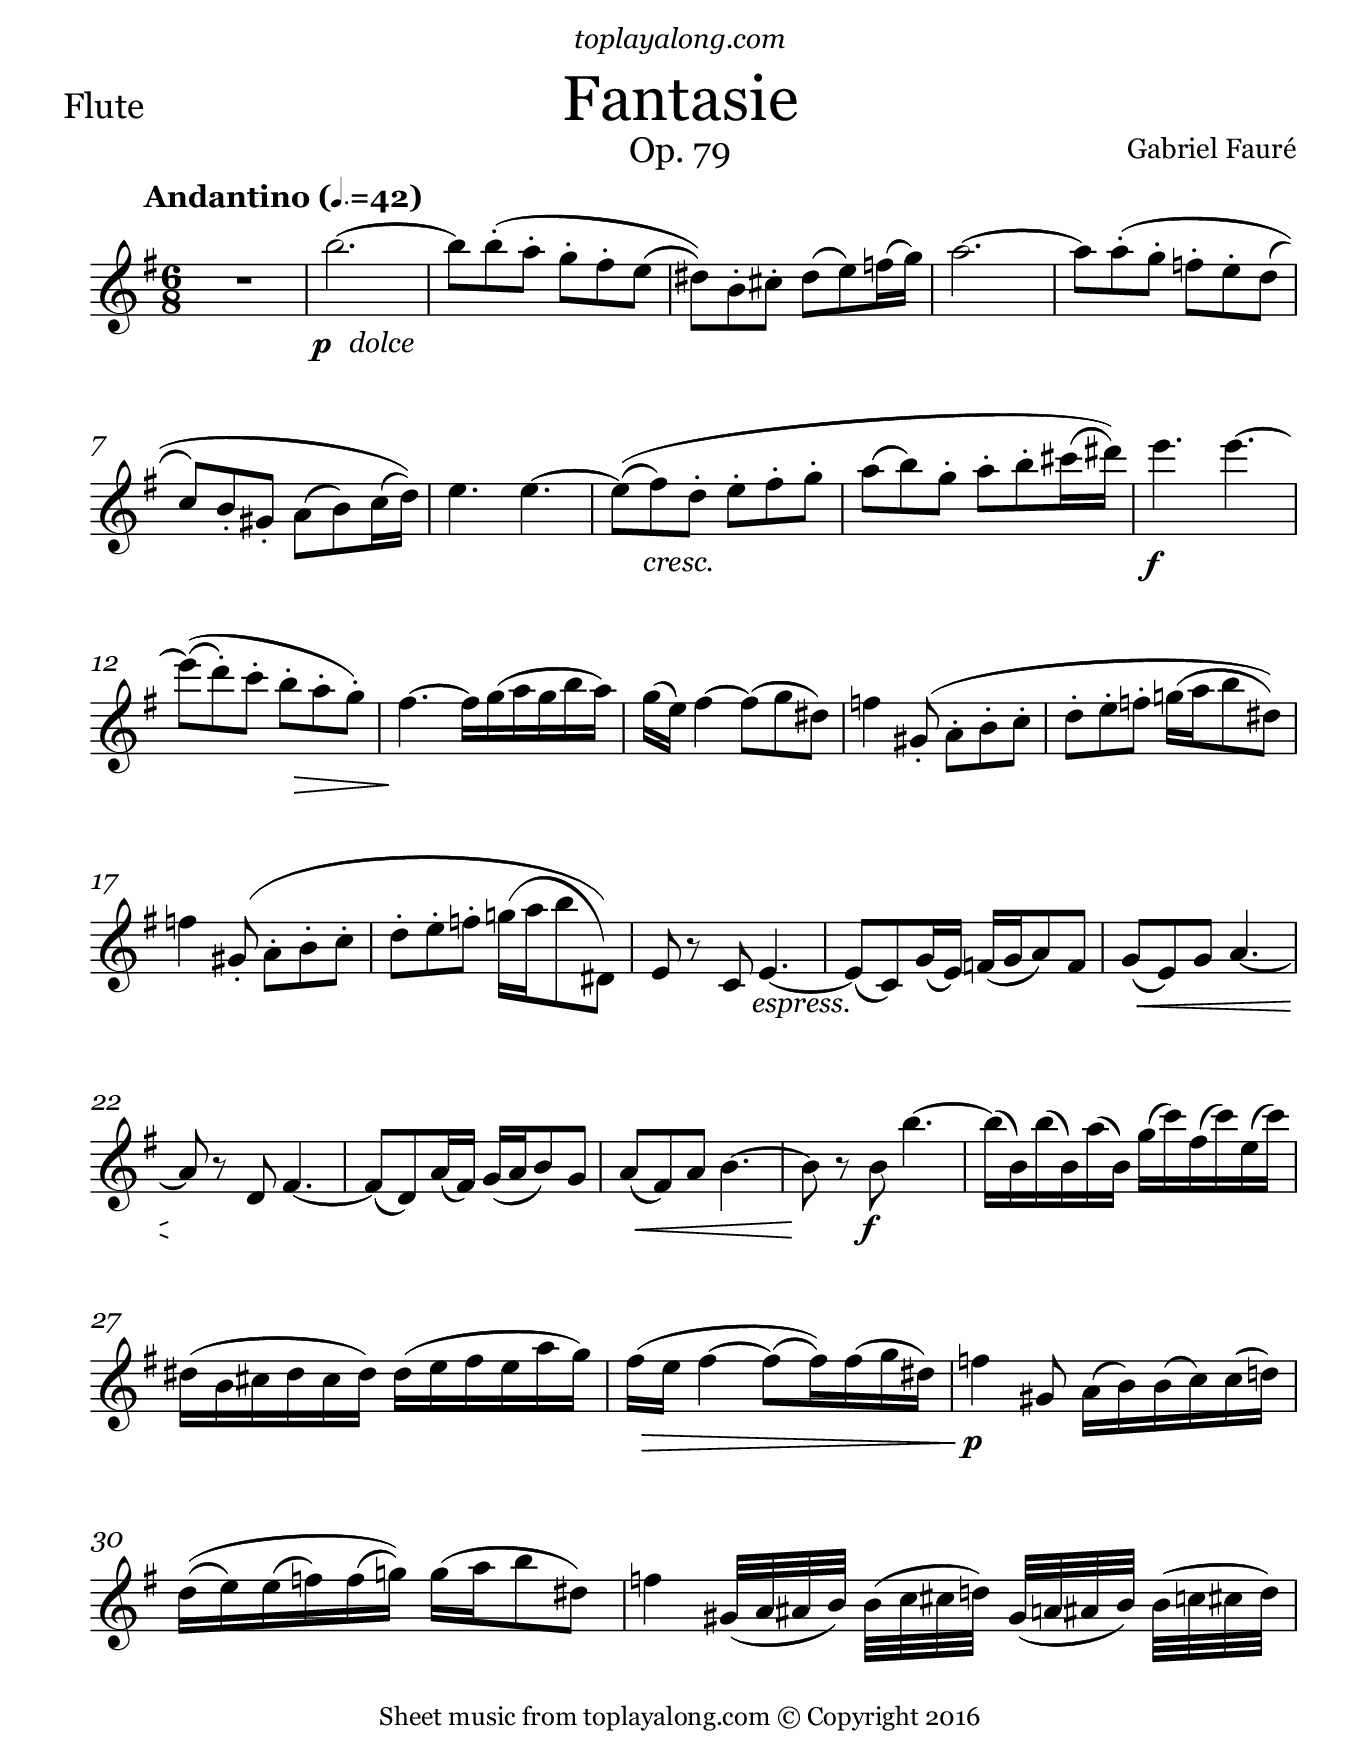 Fantasie Op. 79 by Fauré. Sheet music for Flute, page 1.